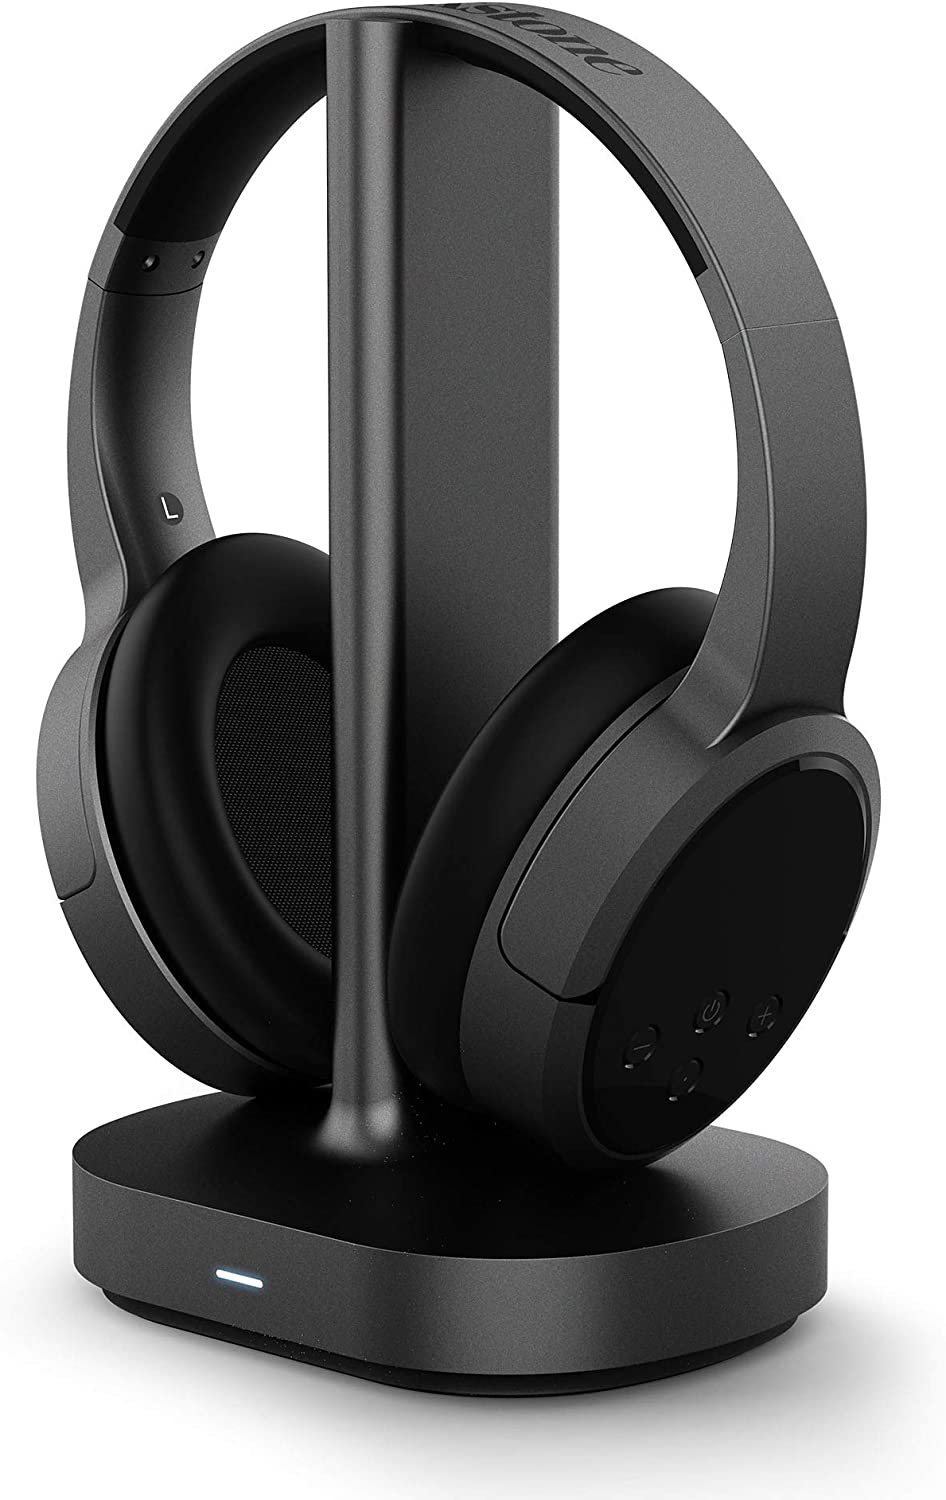 Brookstone AirPhones Wireless RF TV Headphones with 2.4GHz Wireless Audio/Charging Dock,100ft Wireless Range, 10Hrs Playtime, Comfortable Ear-Pads, Black, (Support Optical, 3.5mm AUX, RCA Audio Out)